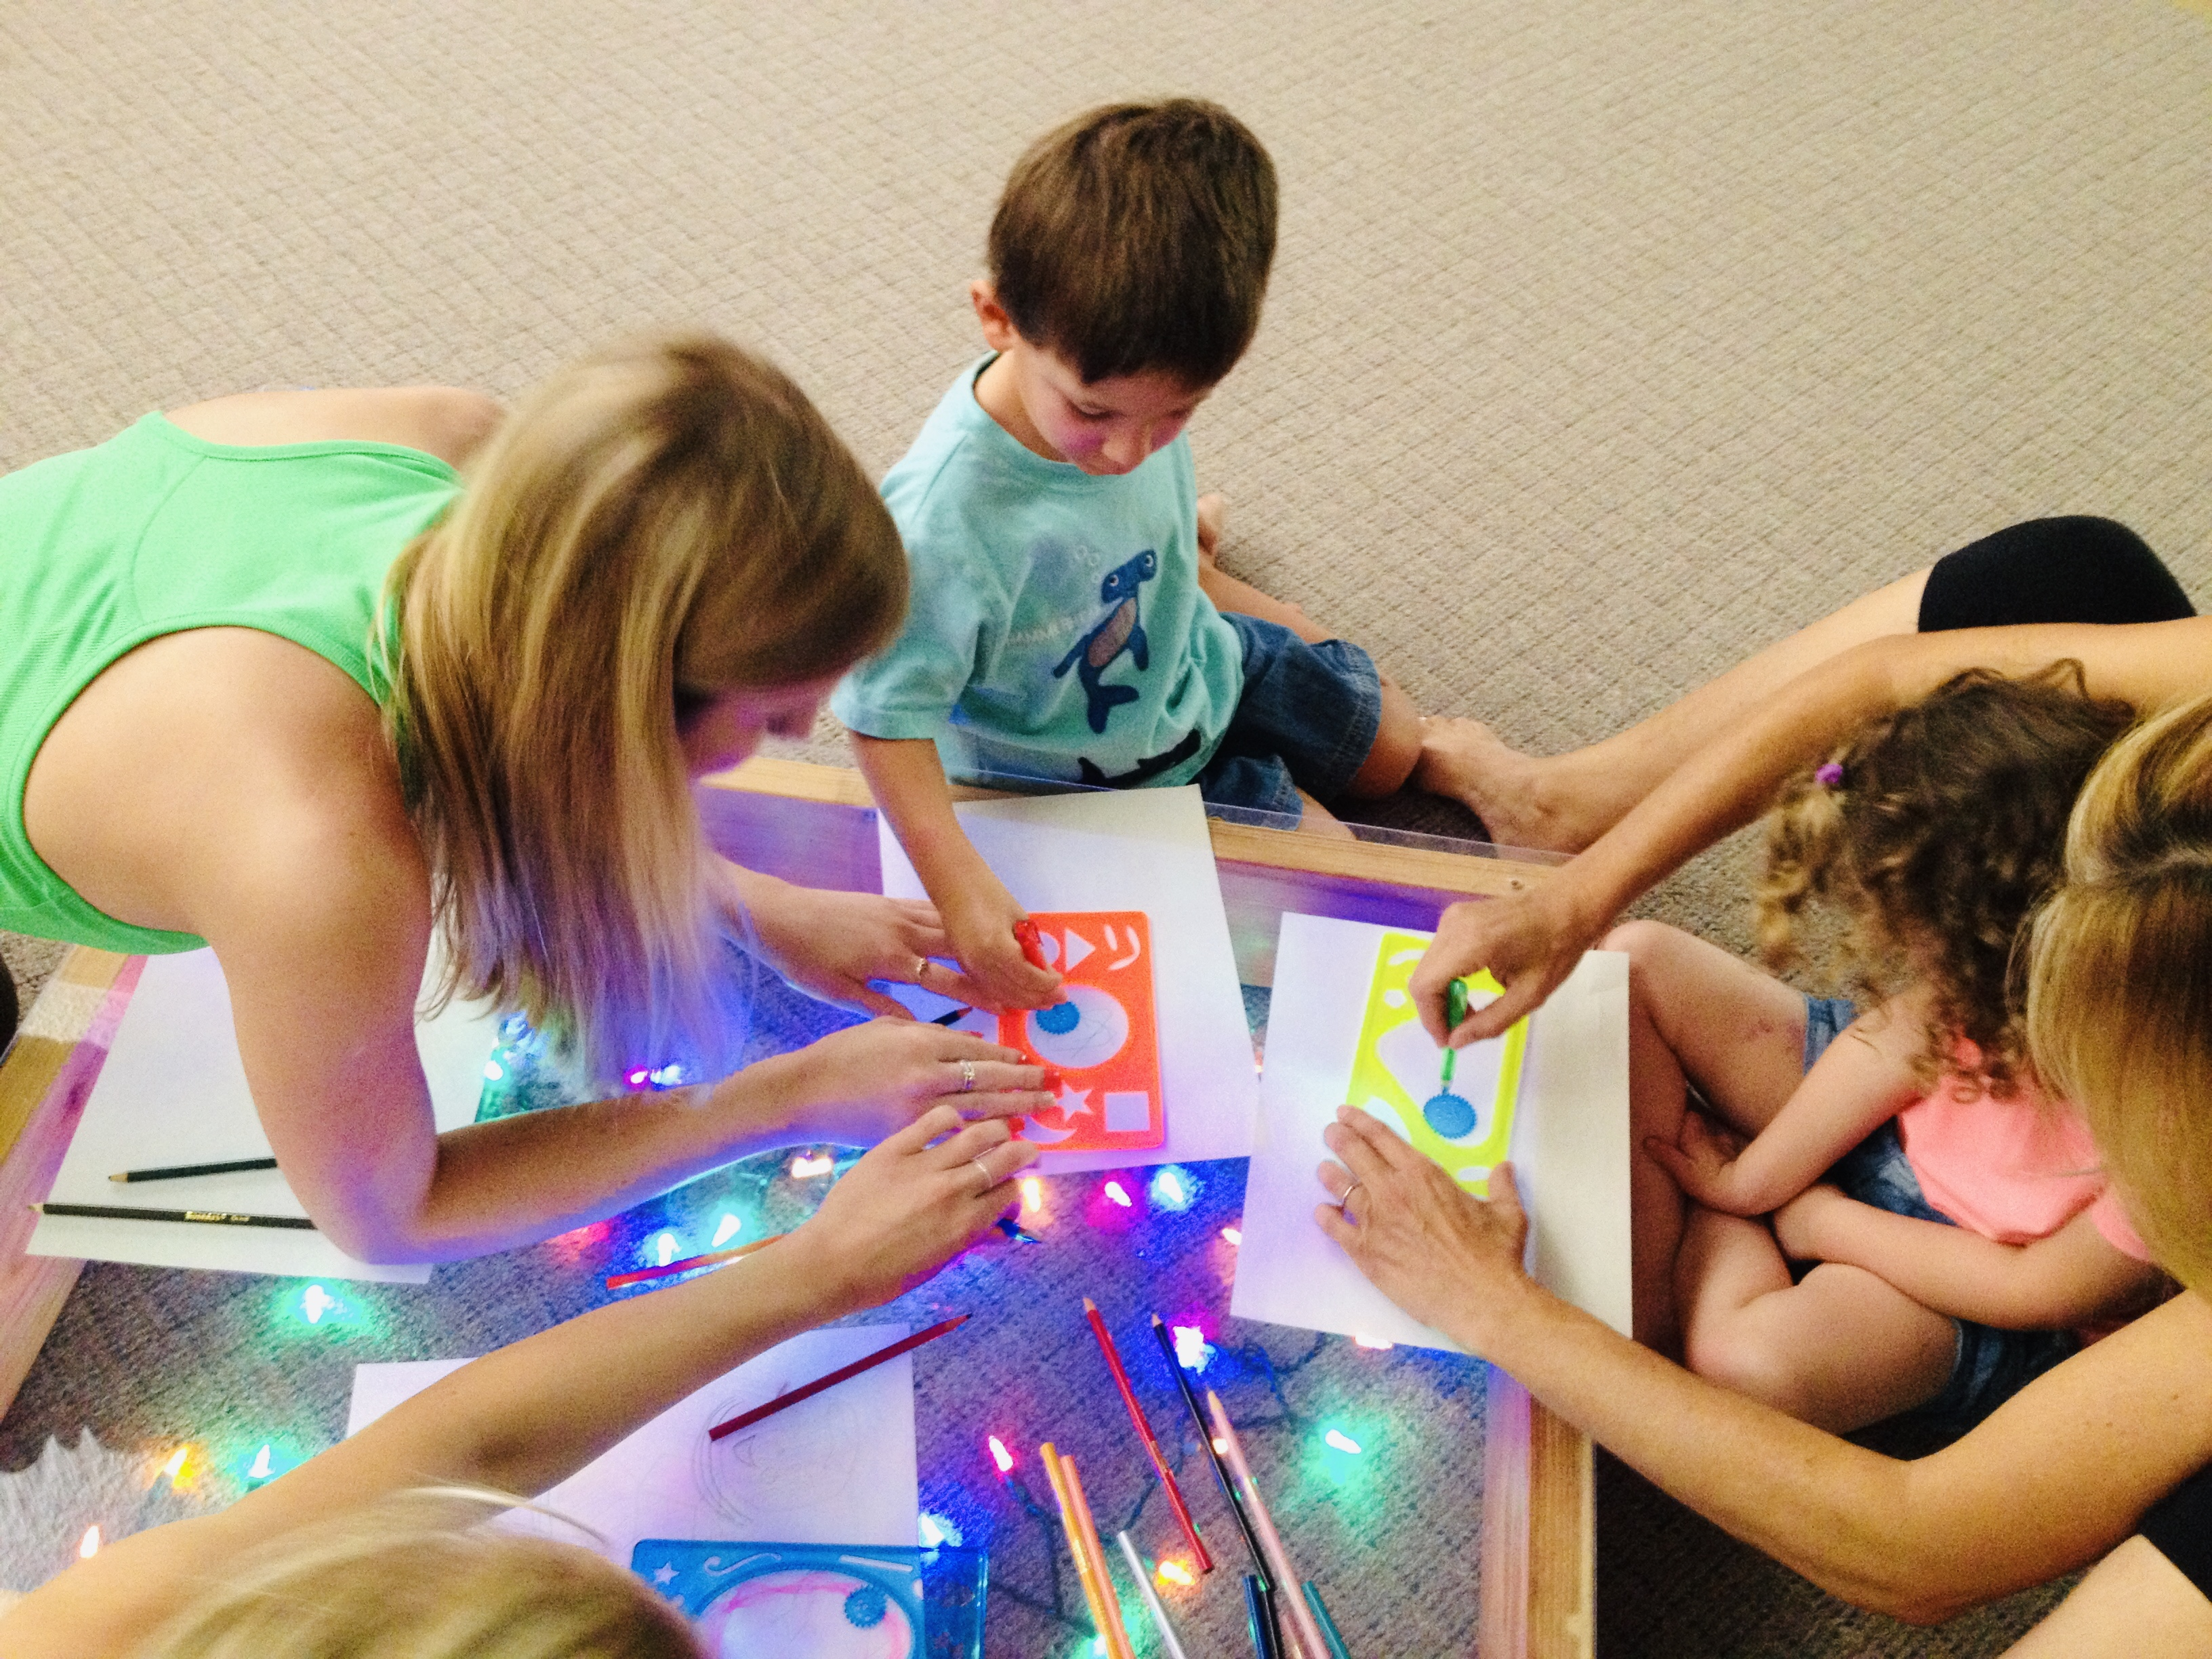 Kids and adults playing on makeshift light table